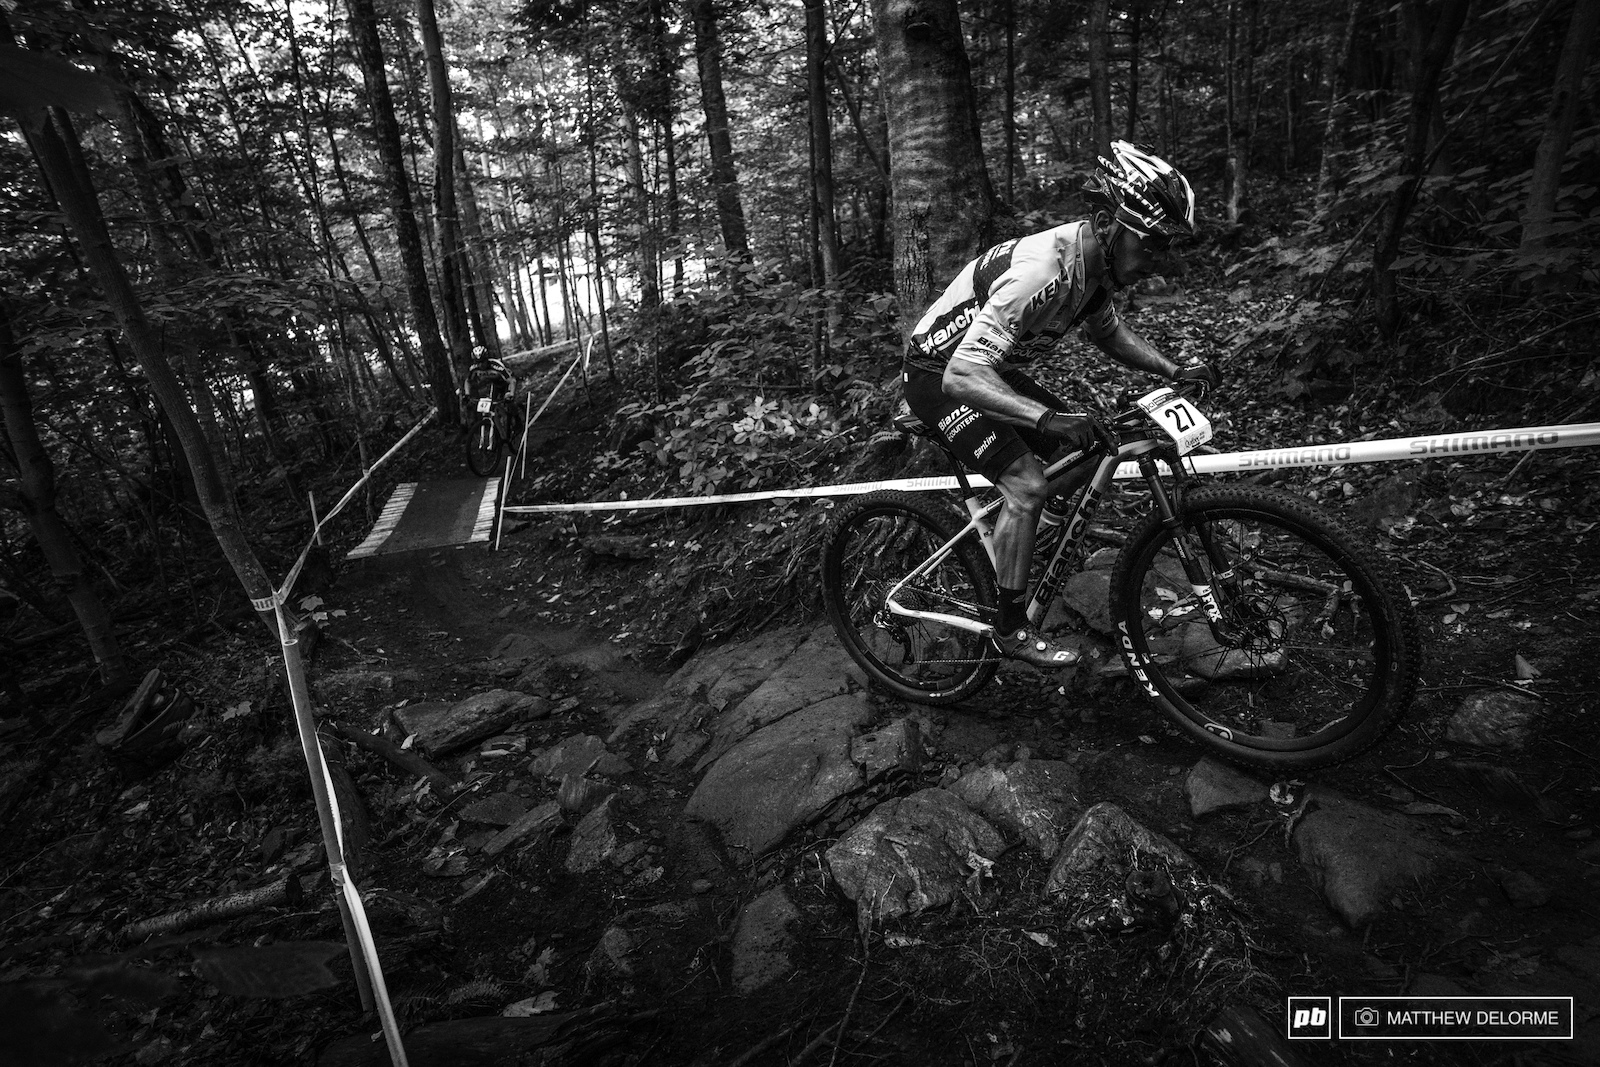 Marco Fontana coming to grip with that slick MSA rock.